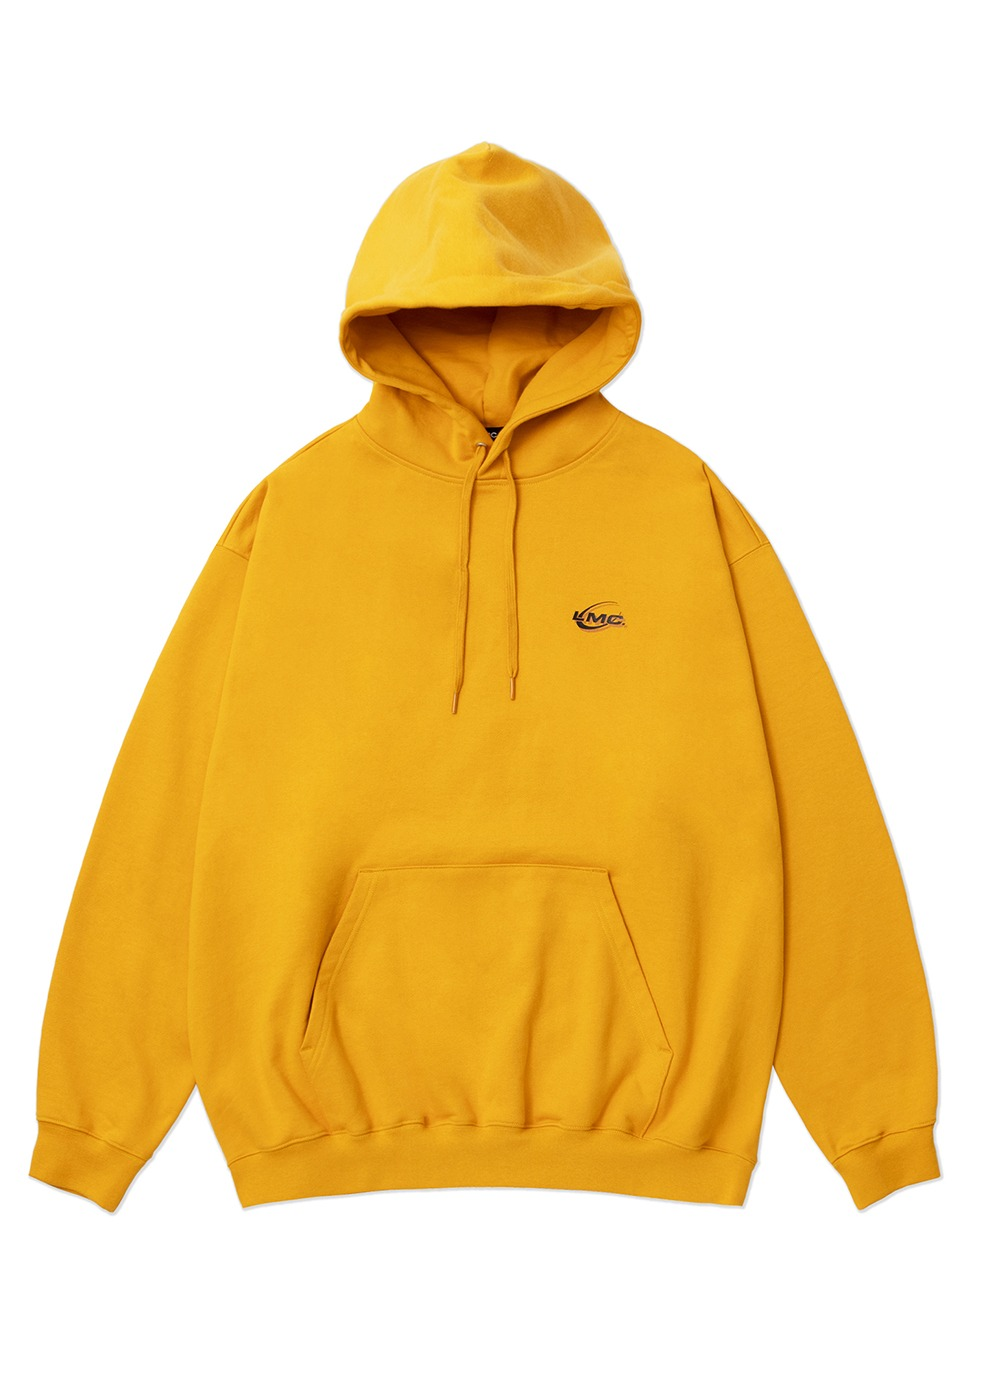 LMC SHADE OVERSIZED HOODIE yellow